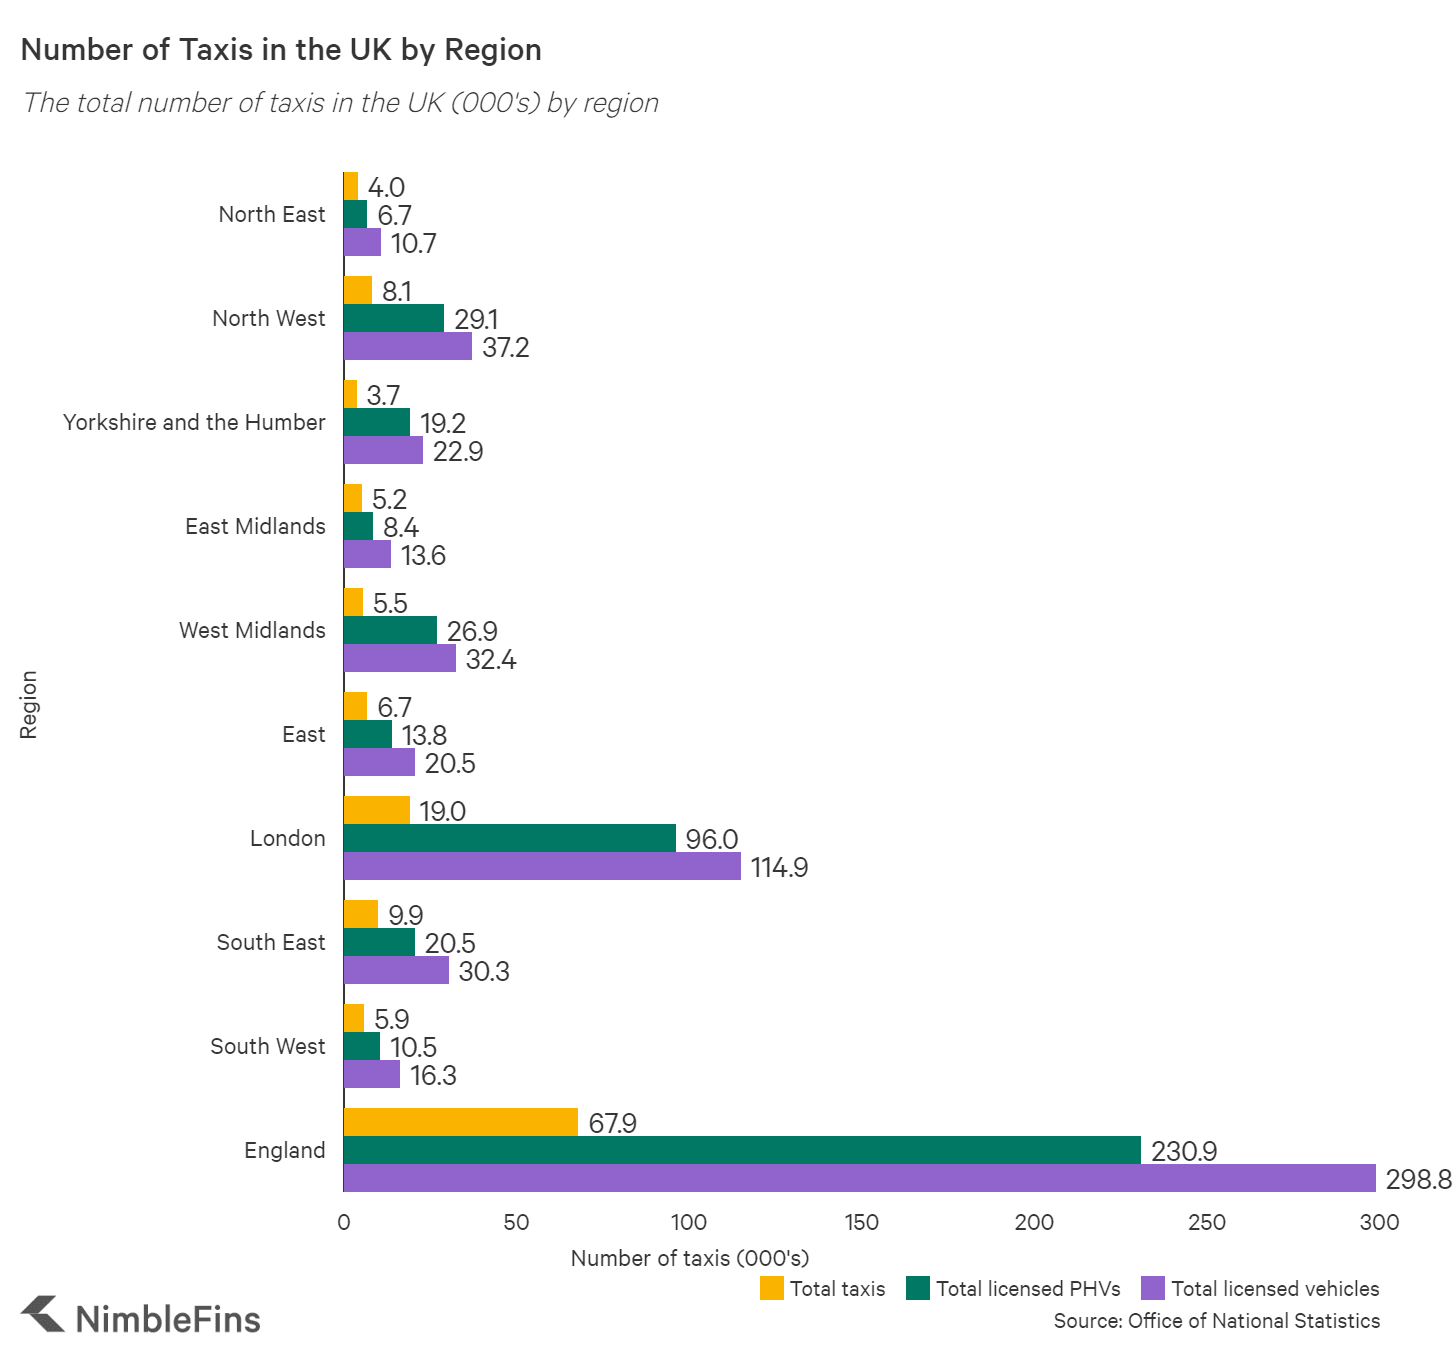 Chart showing number of total taxis and PHV's registered in England